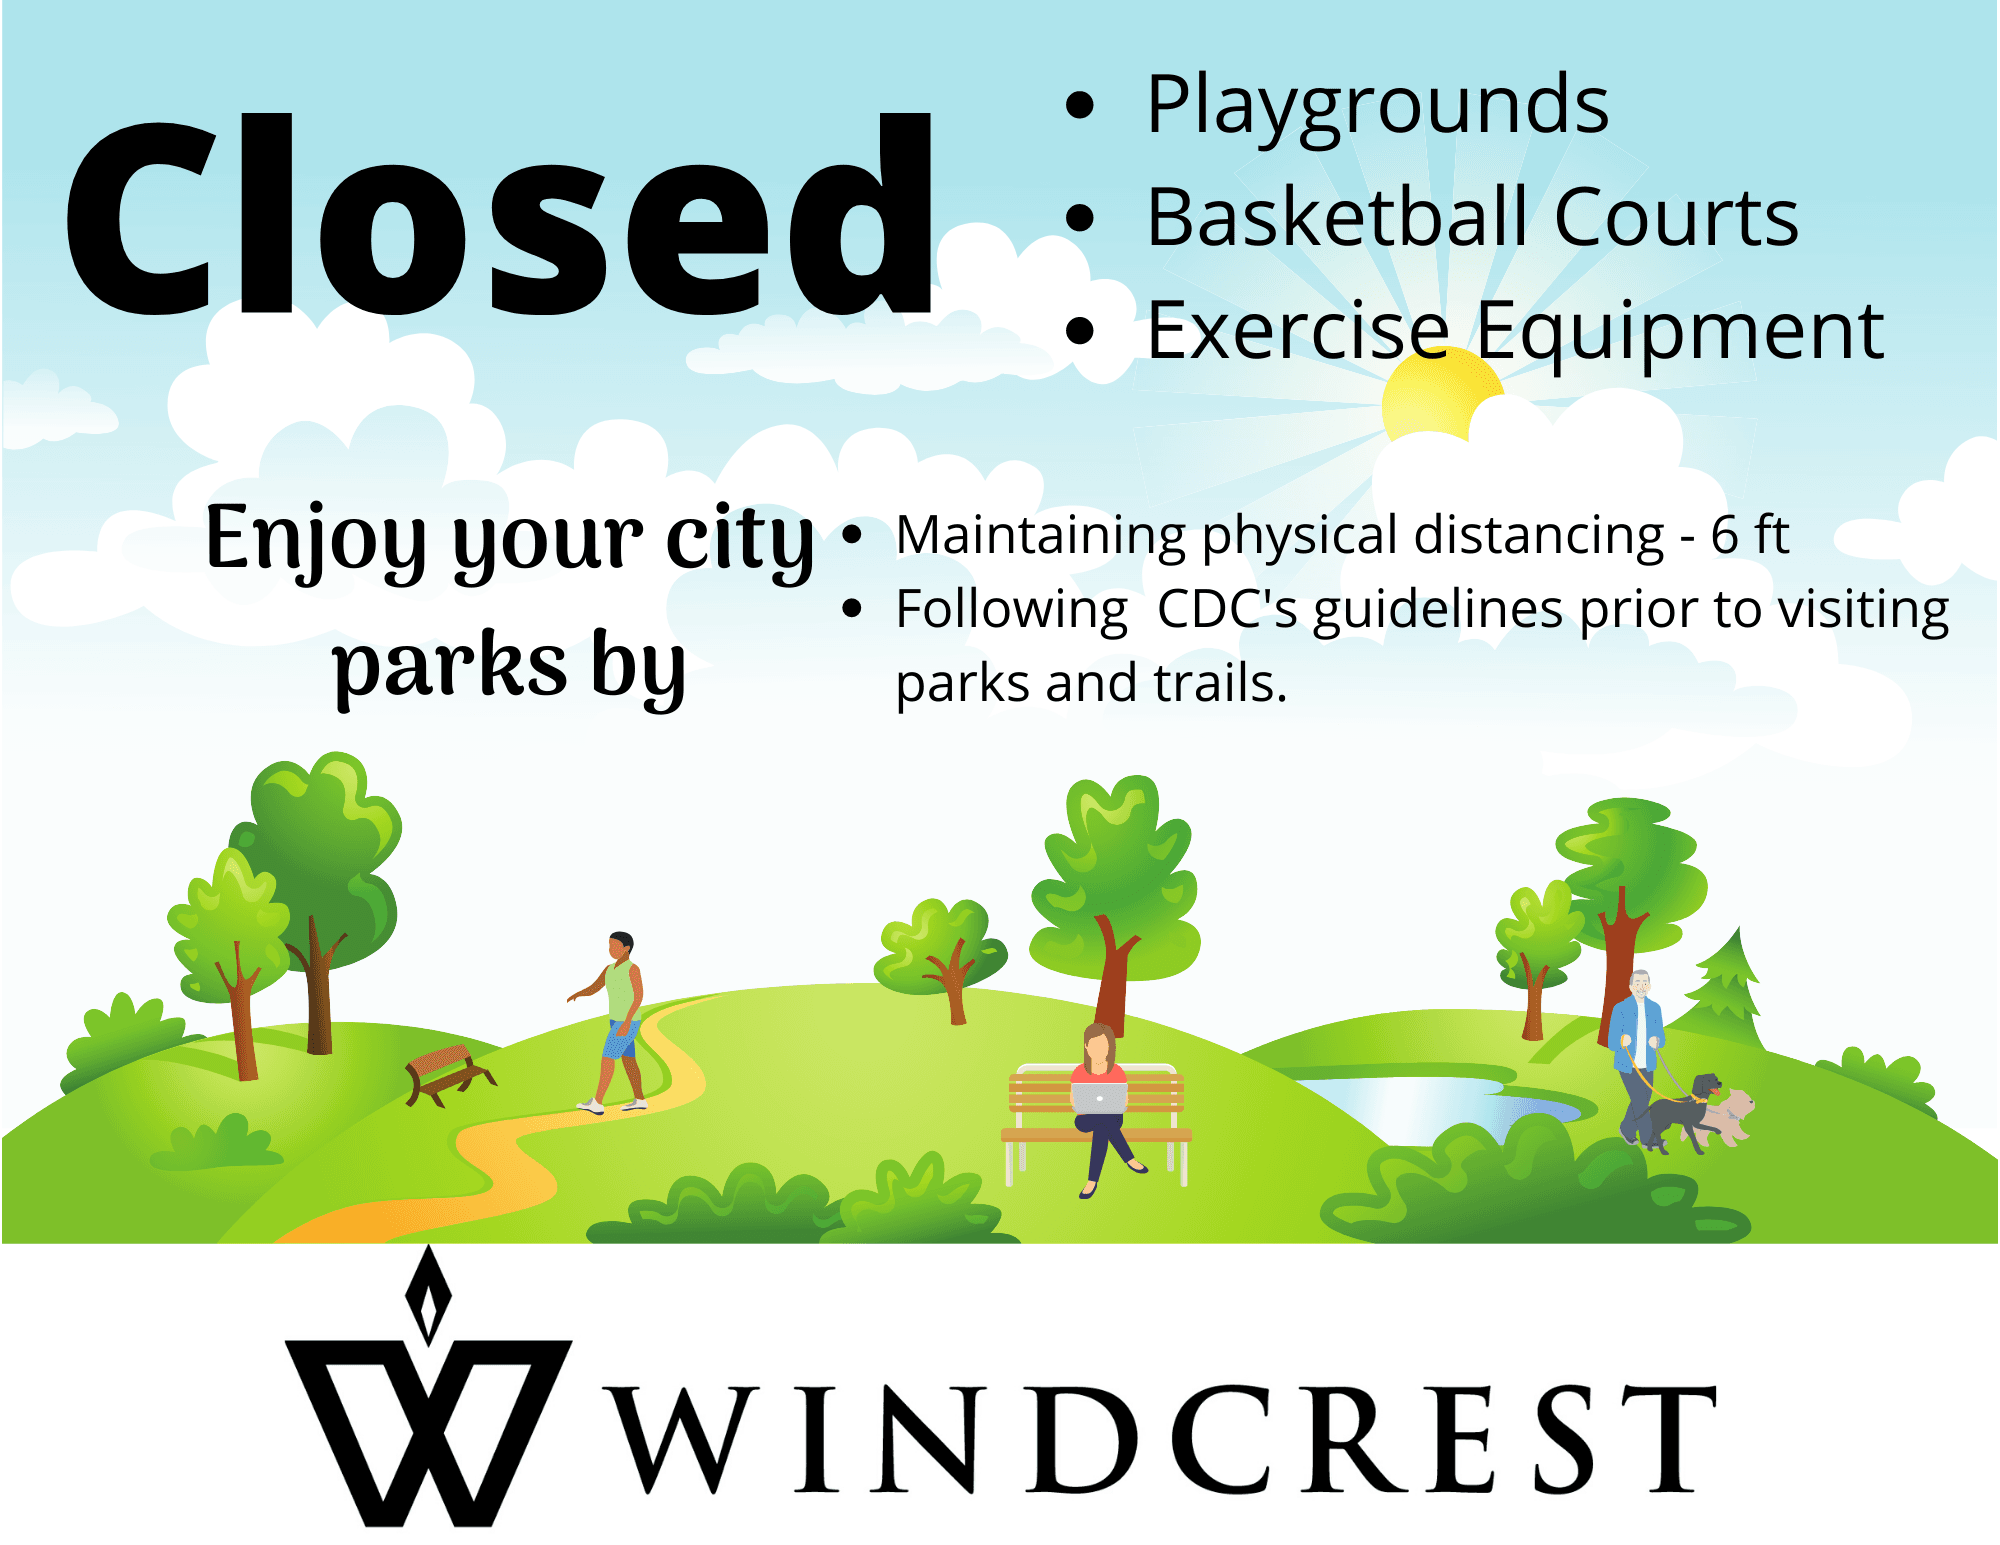 Park amenity closures